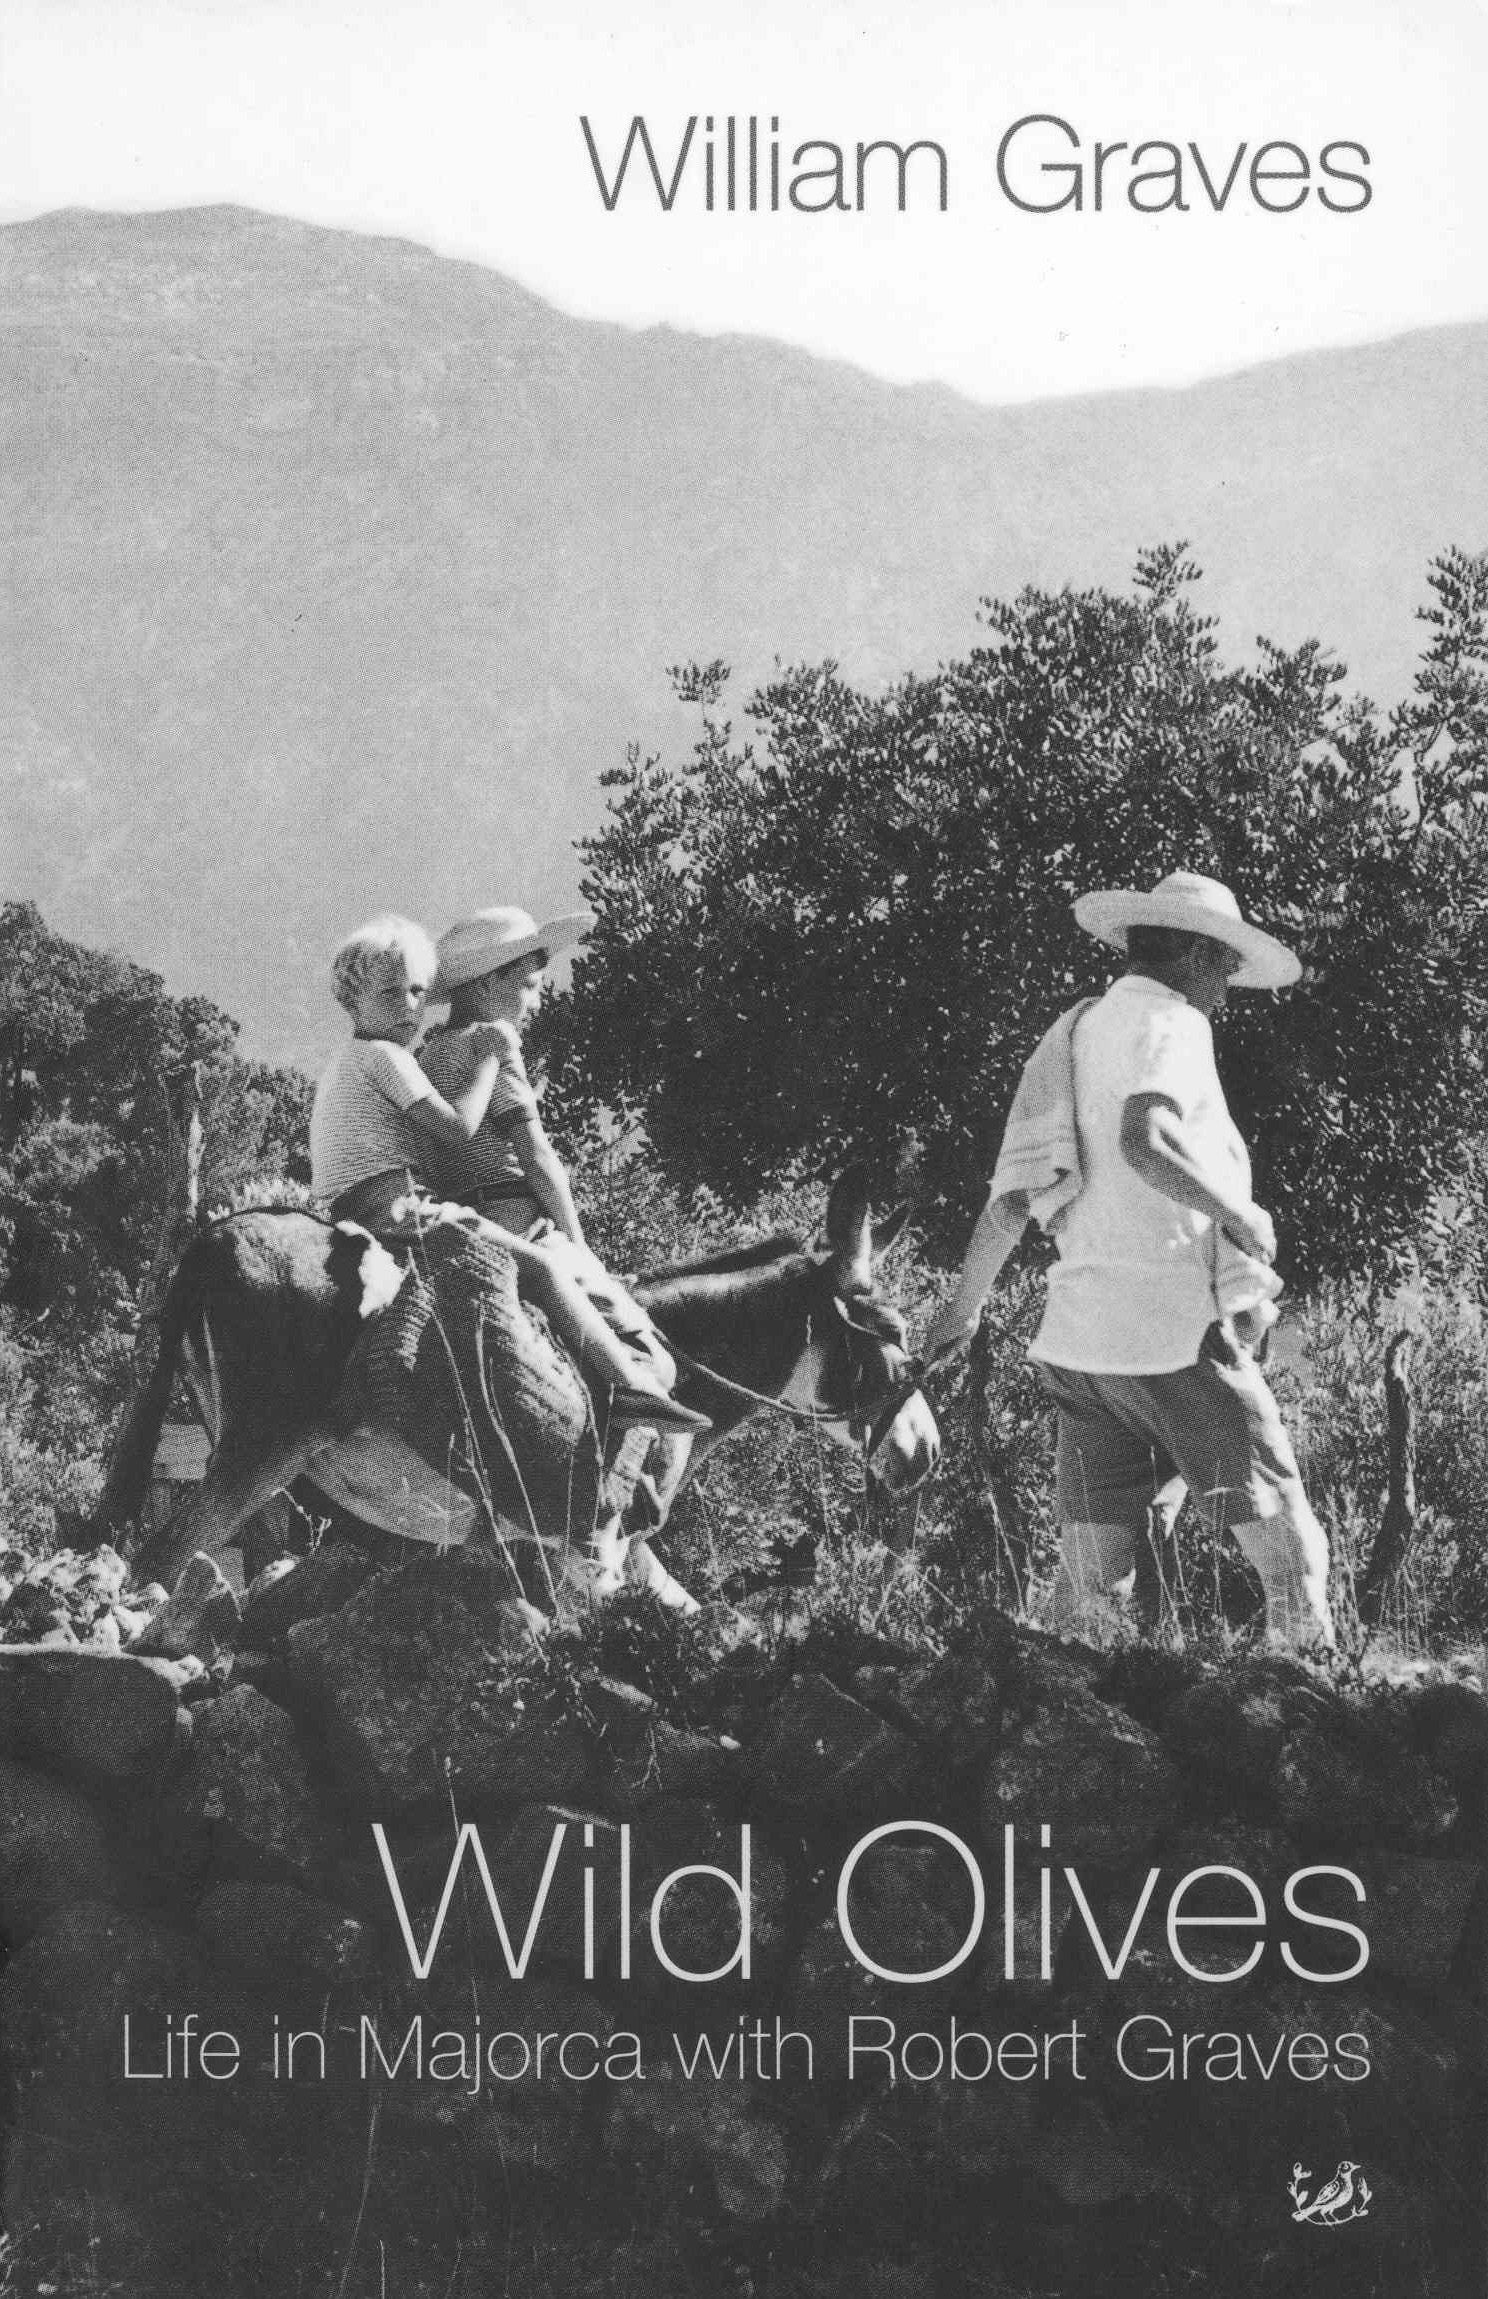 Wild Olives Life in Majorca With Robert Graves